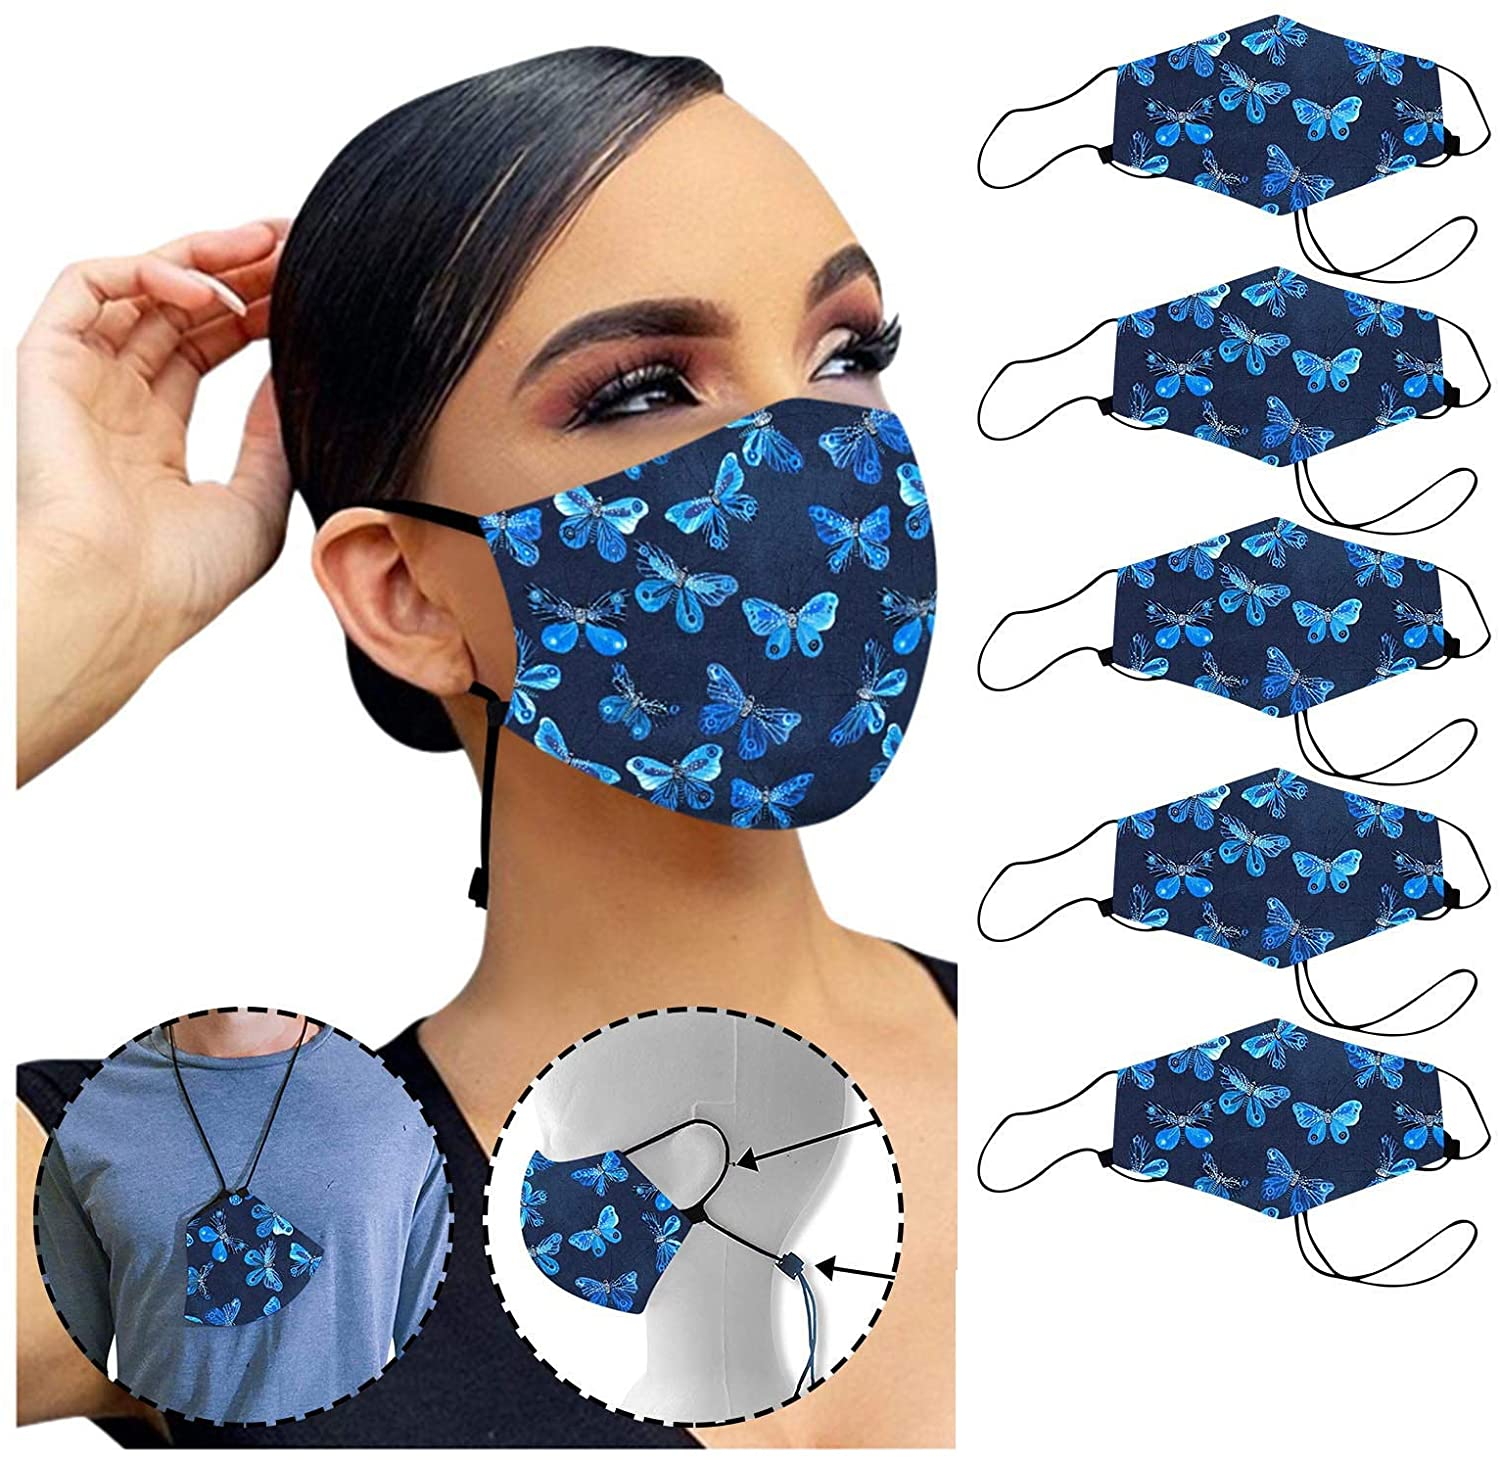 KASSD 5PC Adults Butterfly Print Face_Masks-Reusable Face Covering Washable Face Protection Anti-Dust&Splash Outdoor Facial Decorations for Women